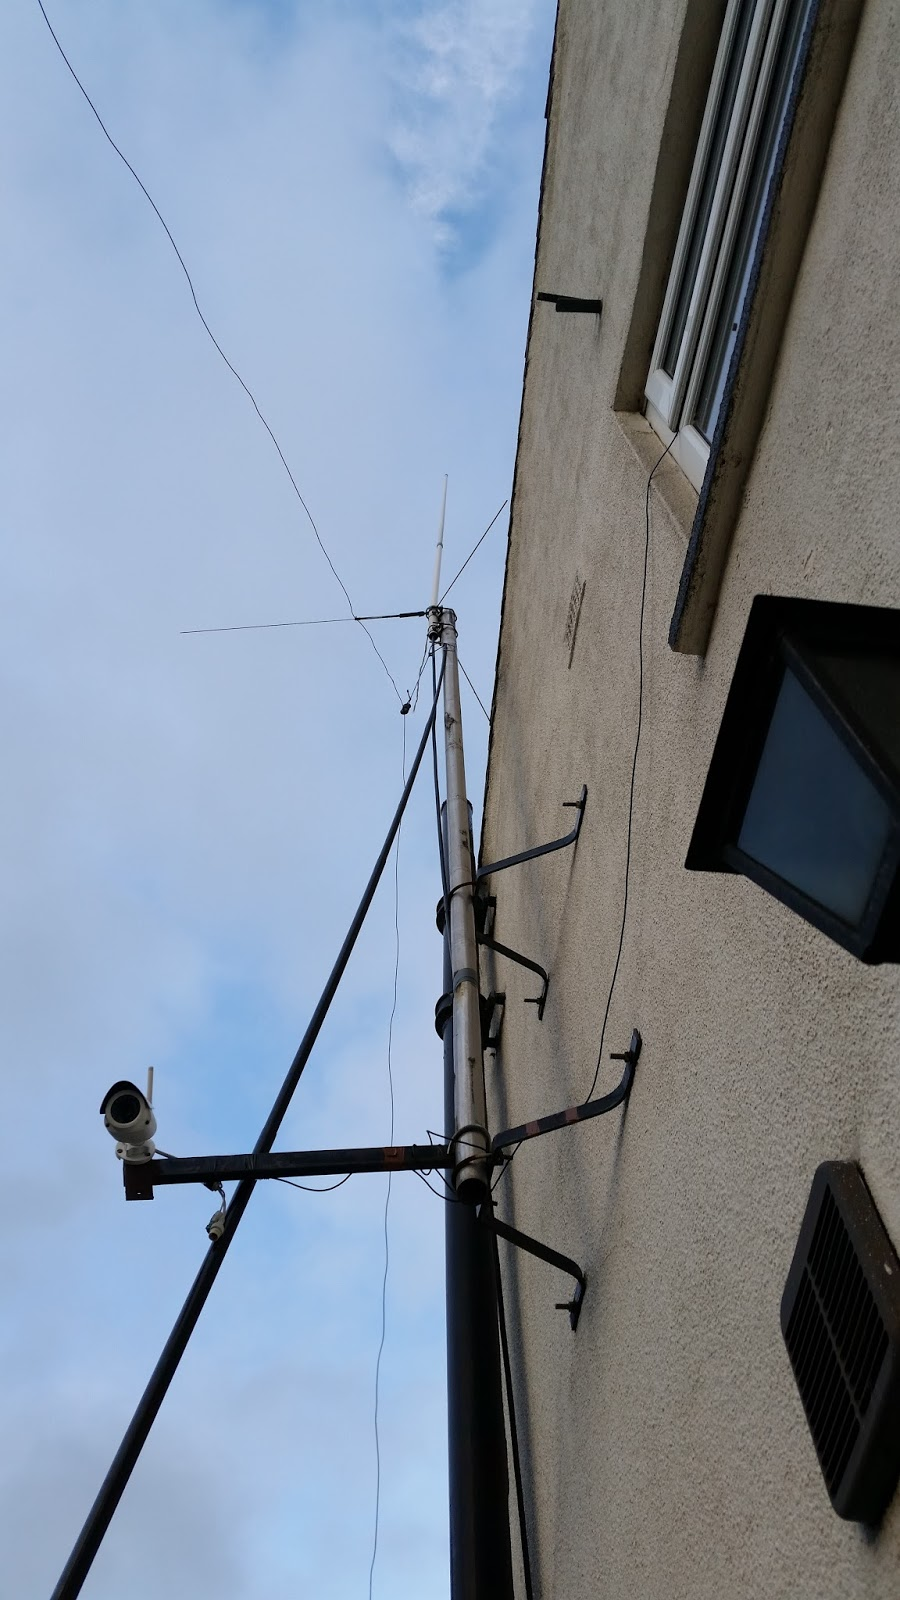 Connecting an AM or FM antenna